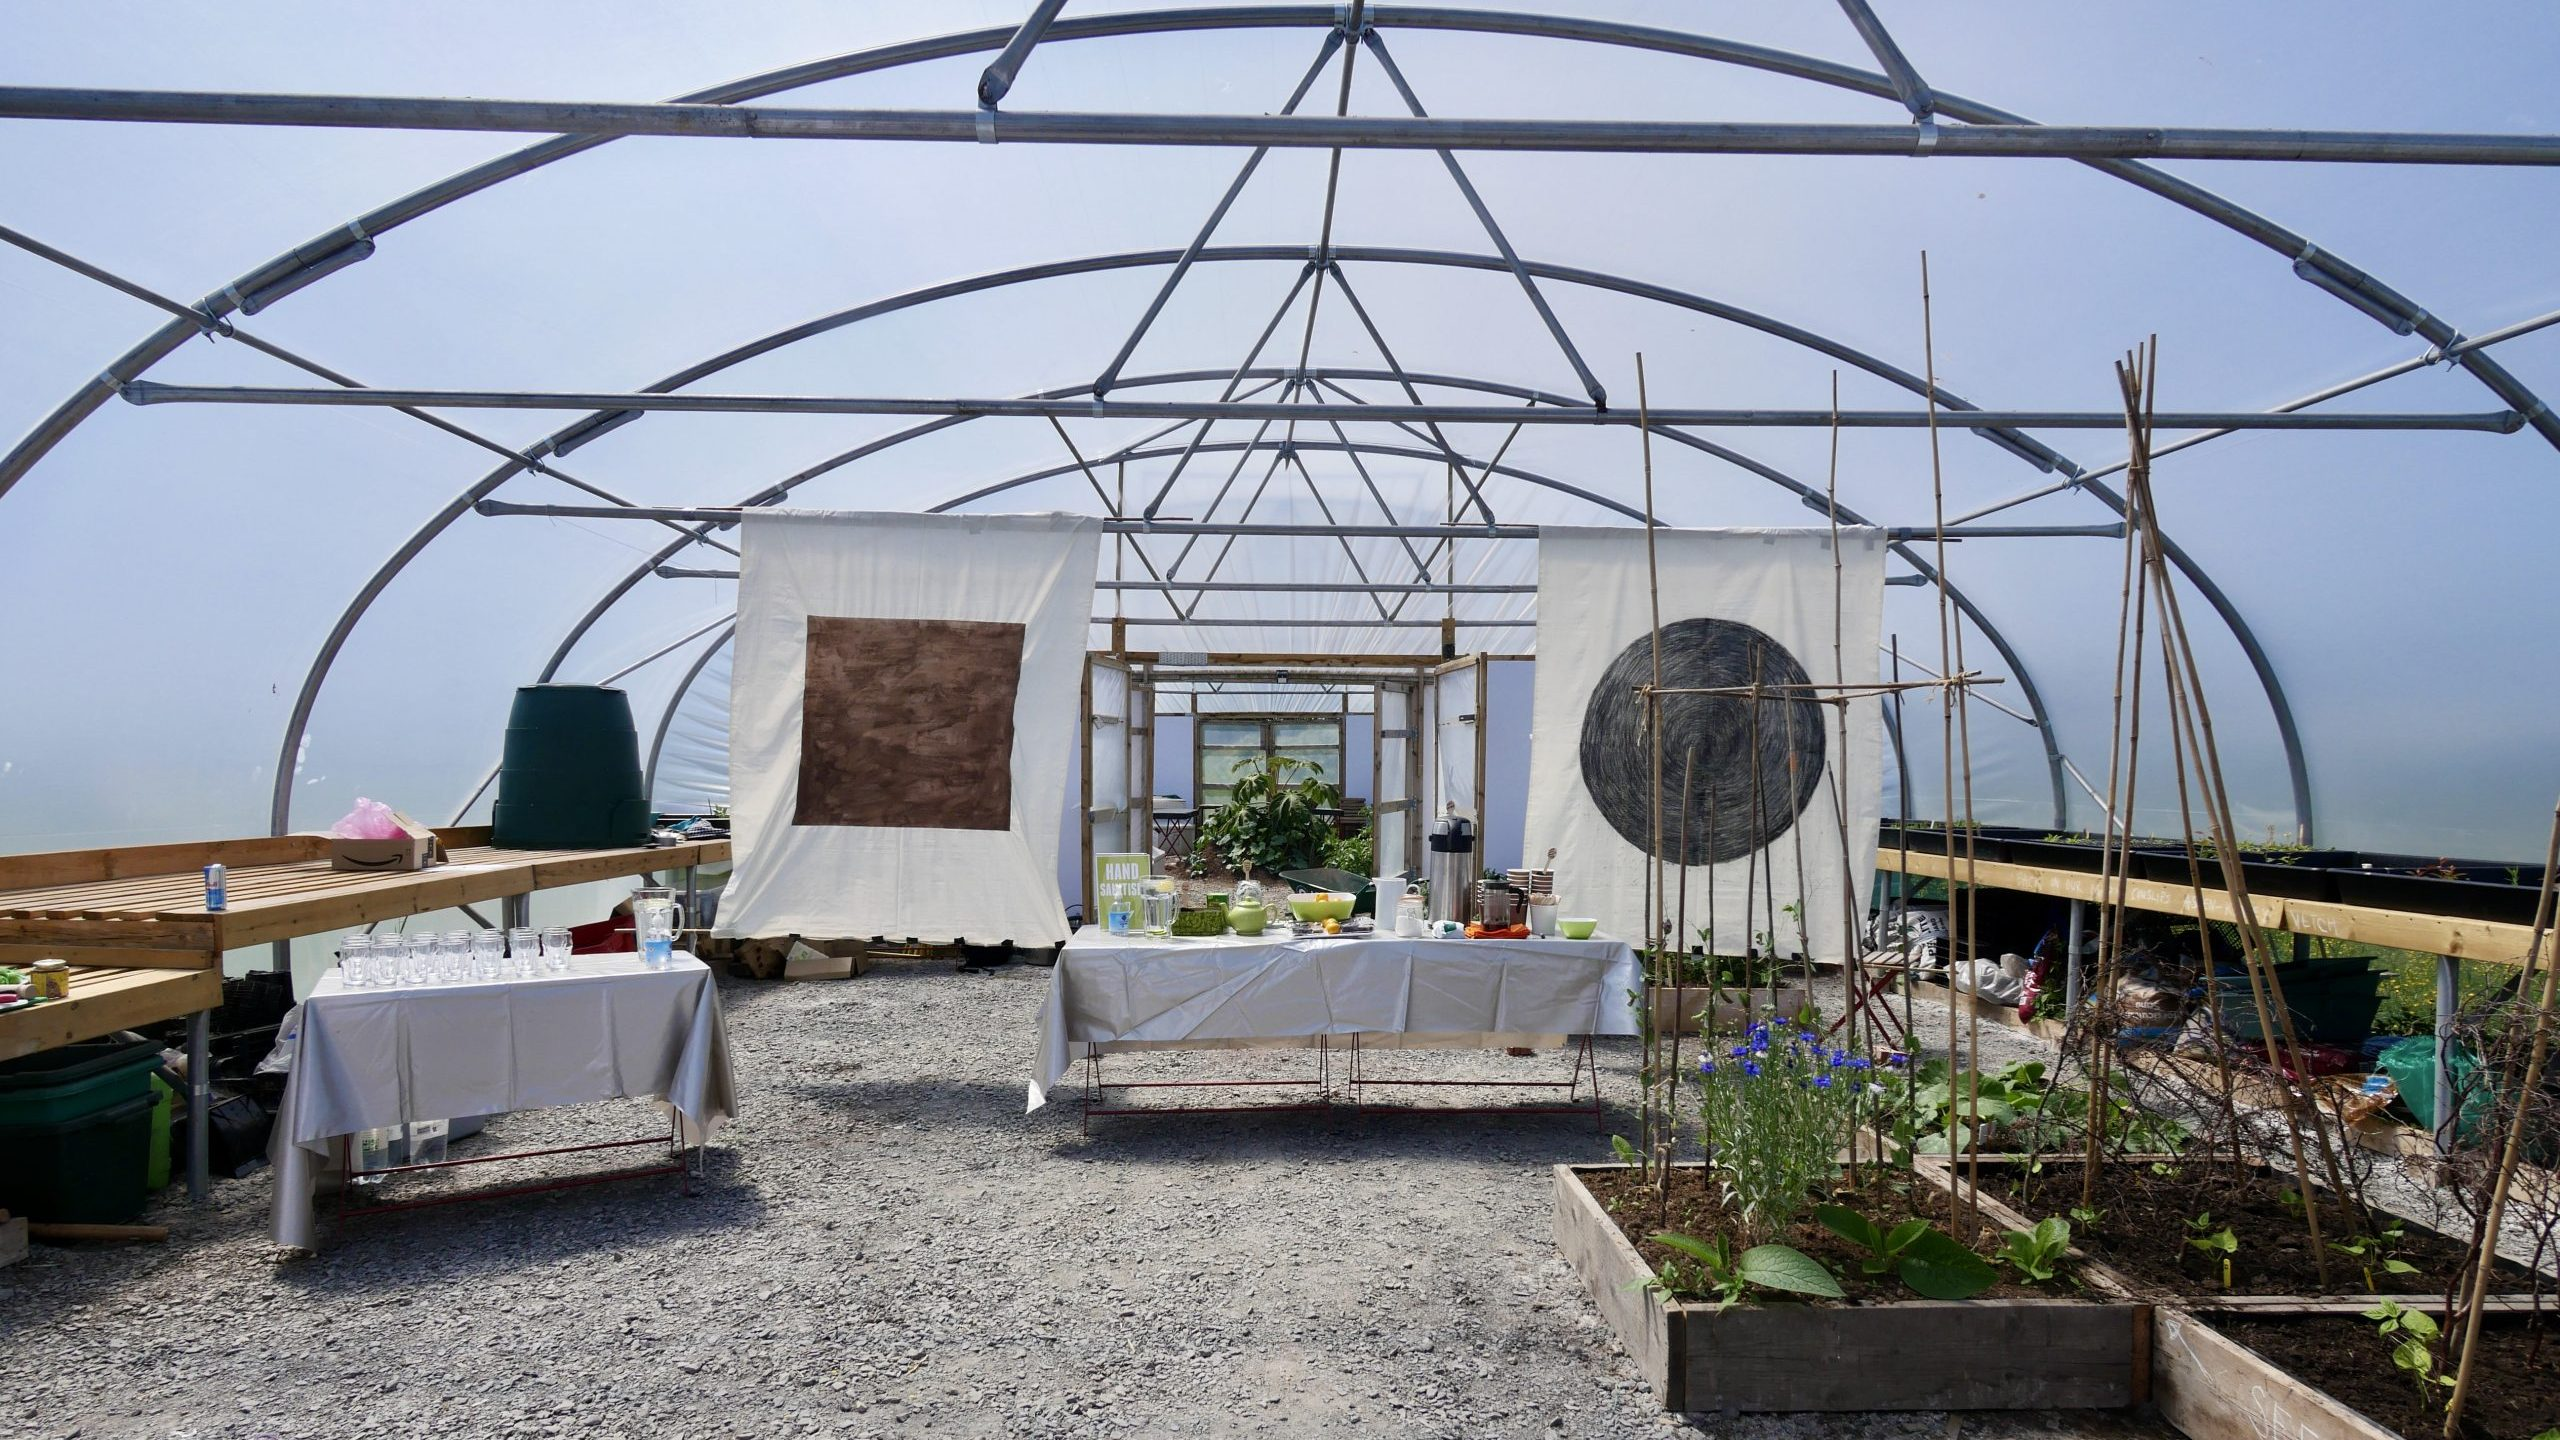 Image: Event inside poly tunnels at Allotment Soup. 2 charcoal drawings on fabric hand either side of a refreshments table.